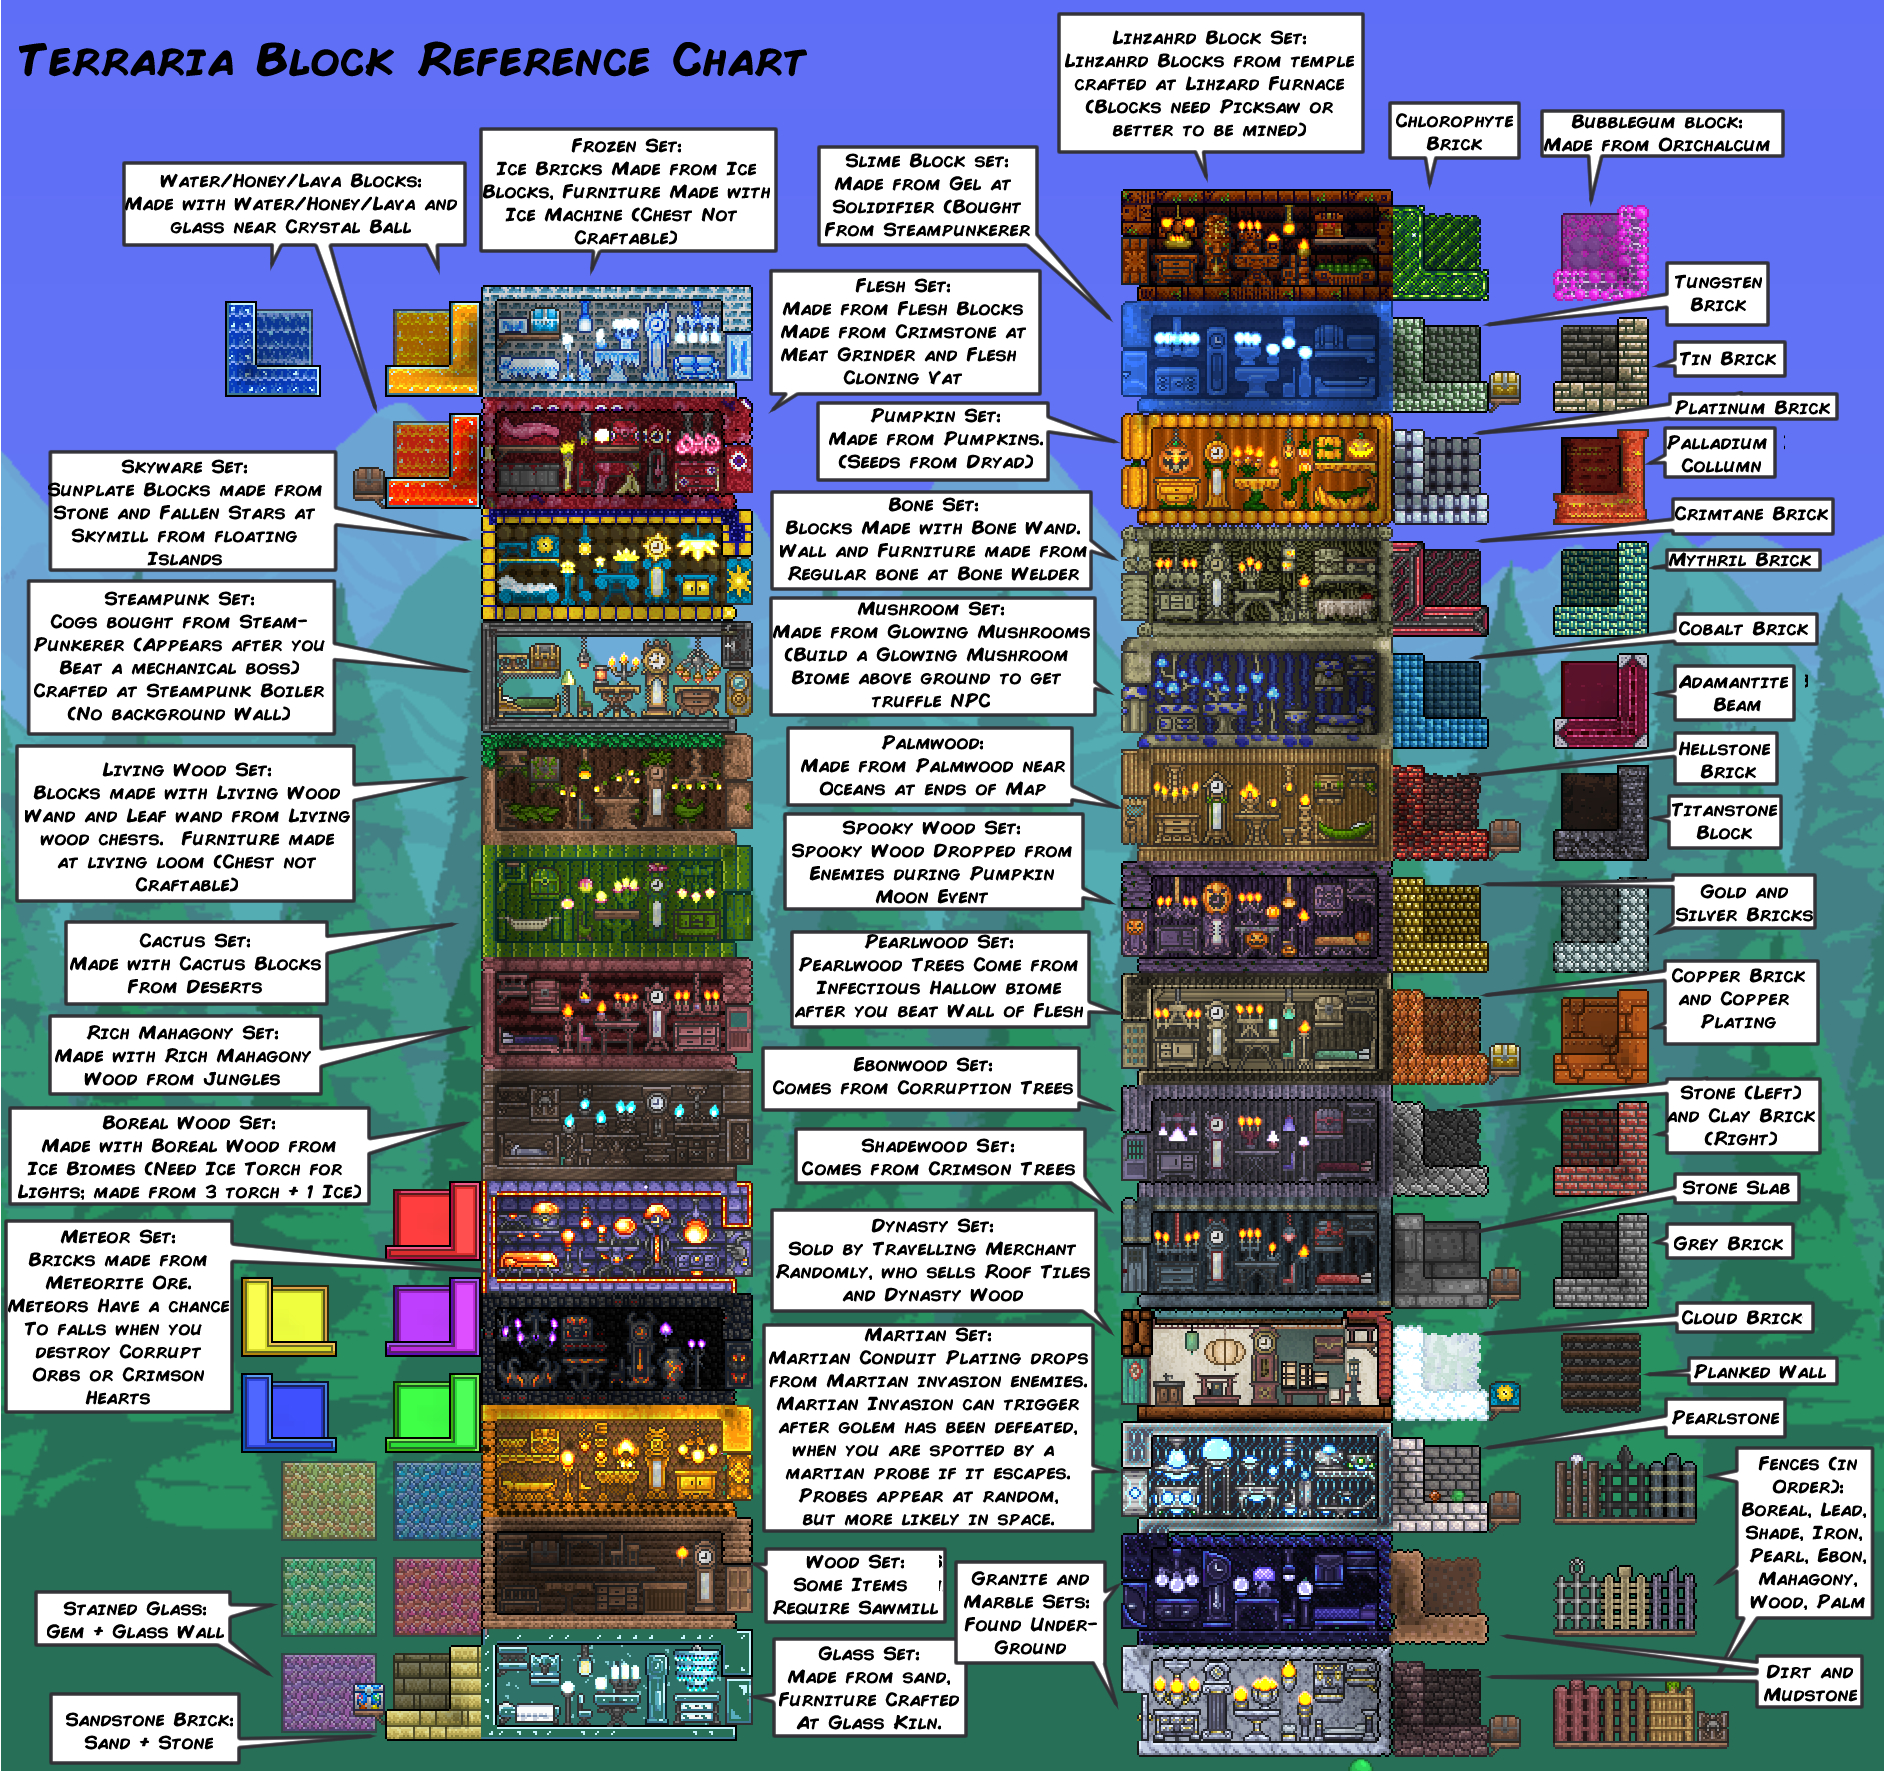 Terraria Block Reference Chart by Fenris49 on DeviantArt